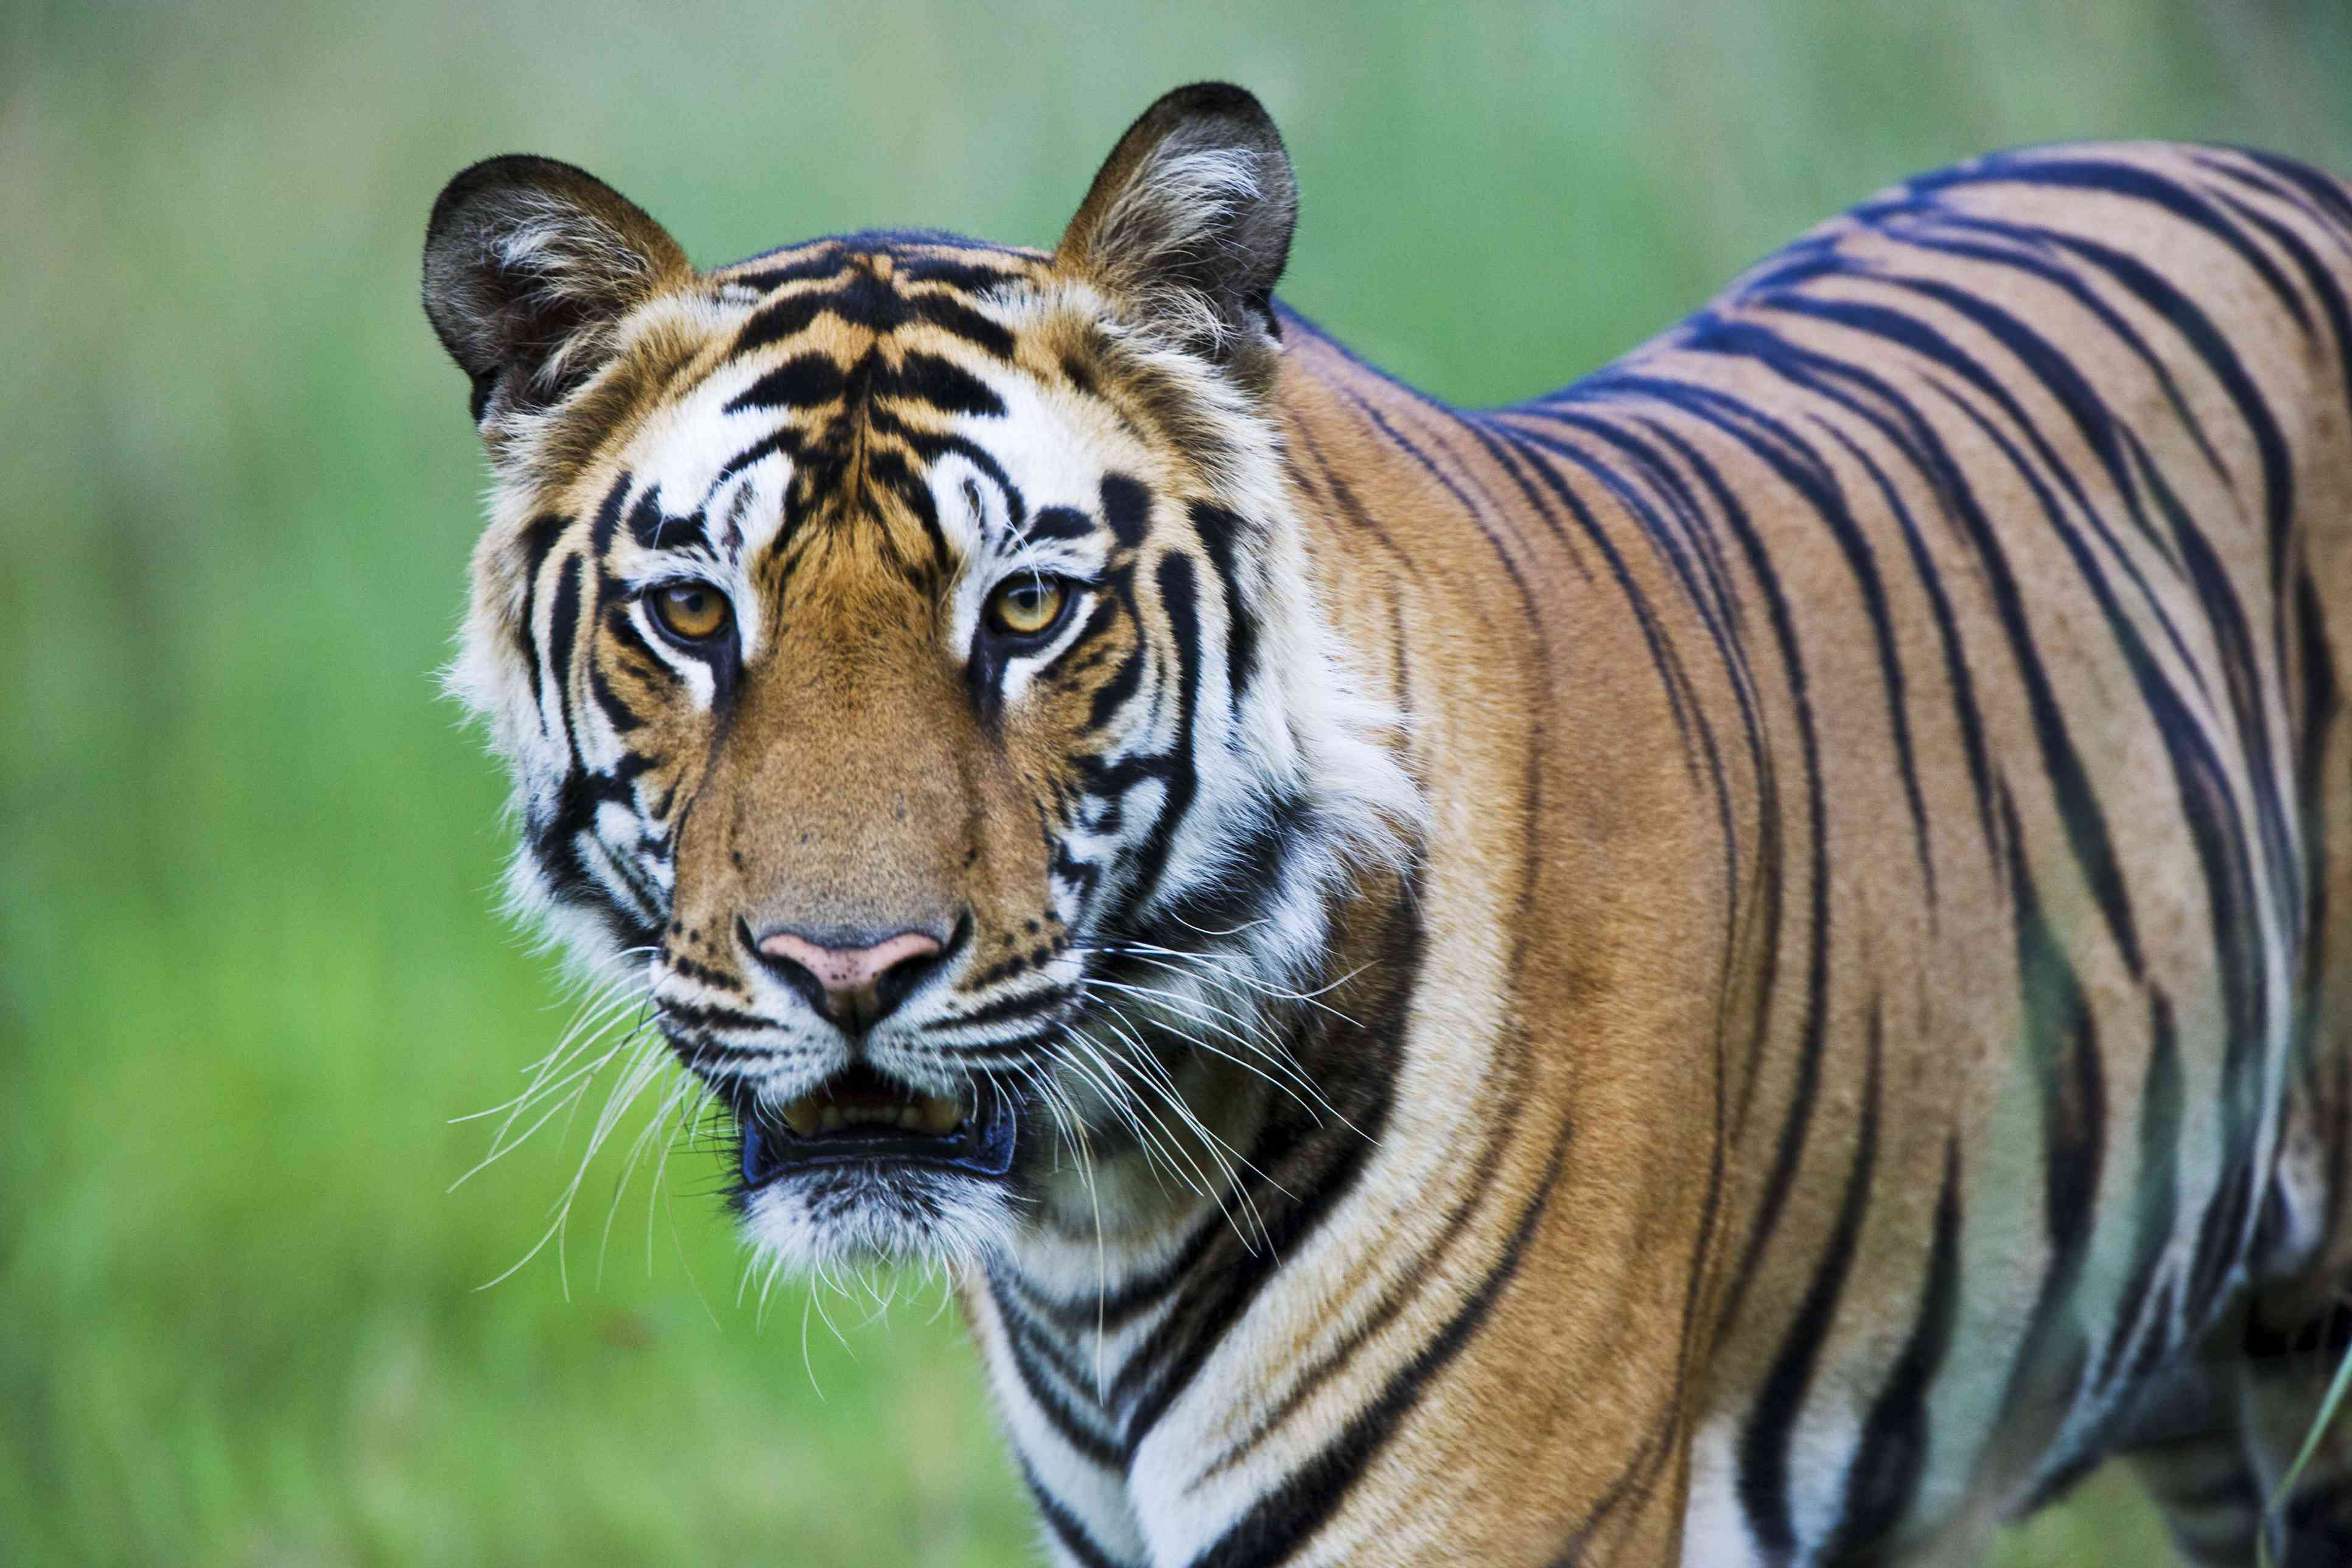 A tiger faces front with grasslands in background.